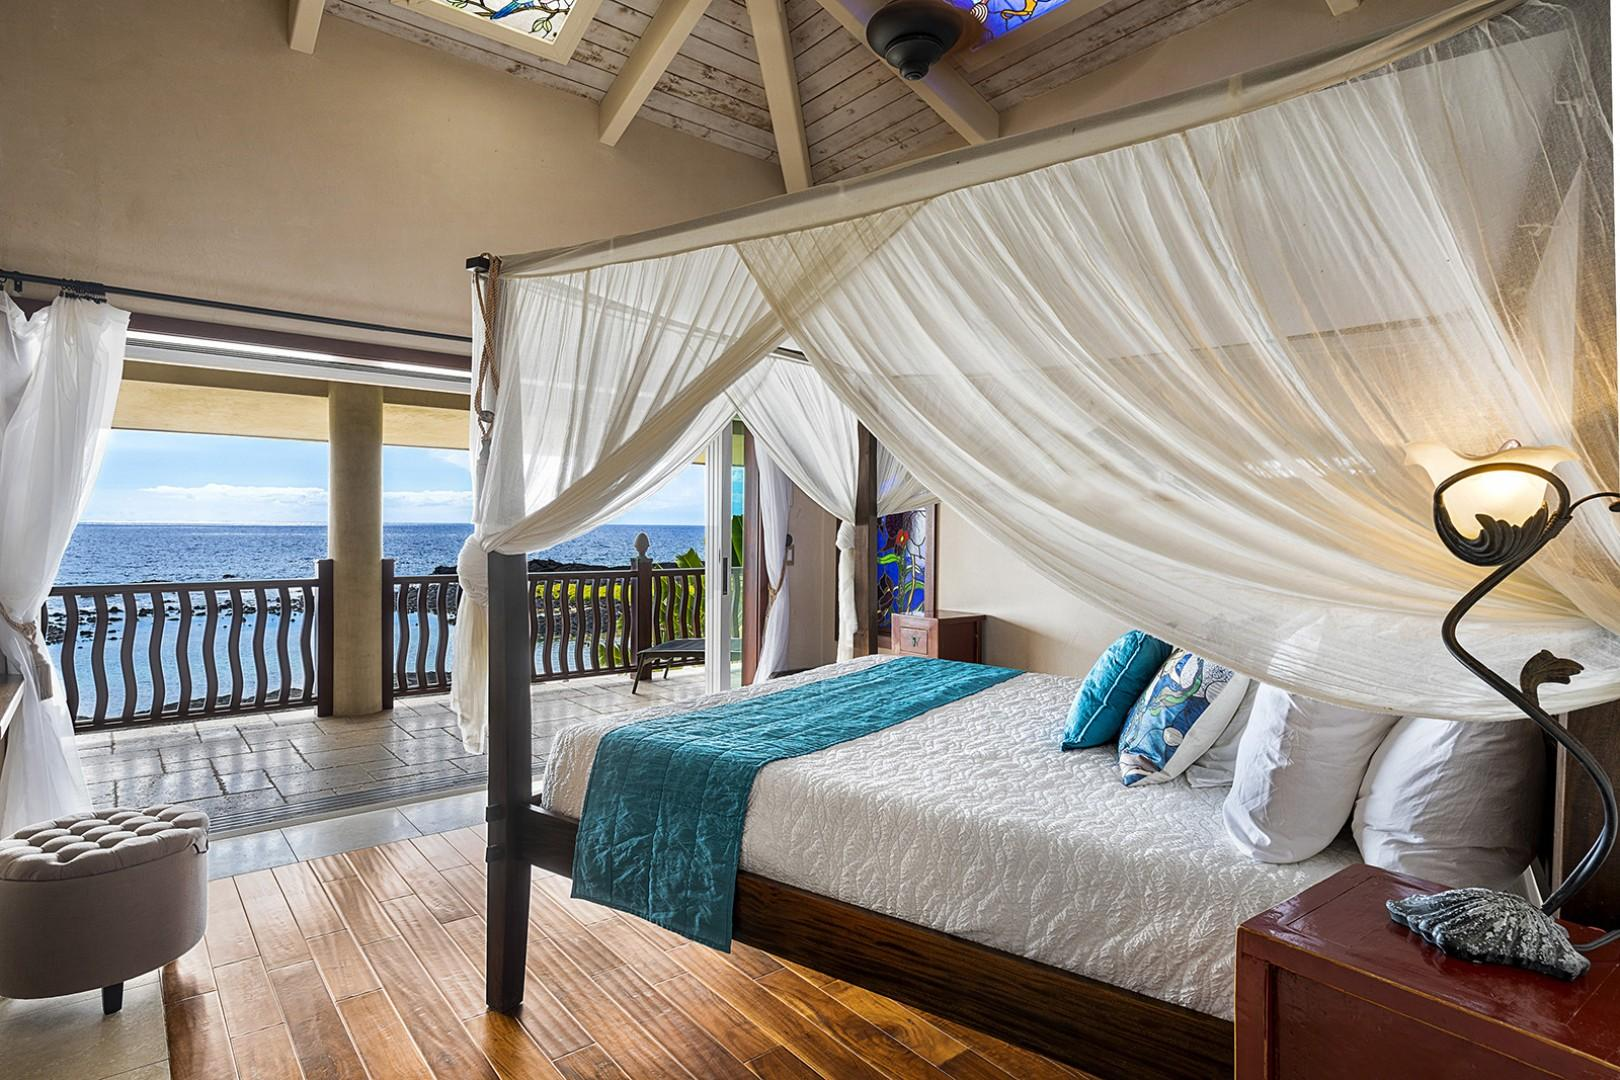 Master bedroom on the top floor